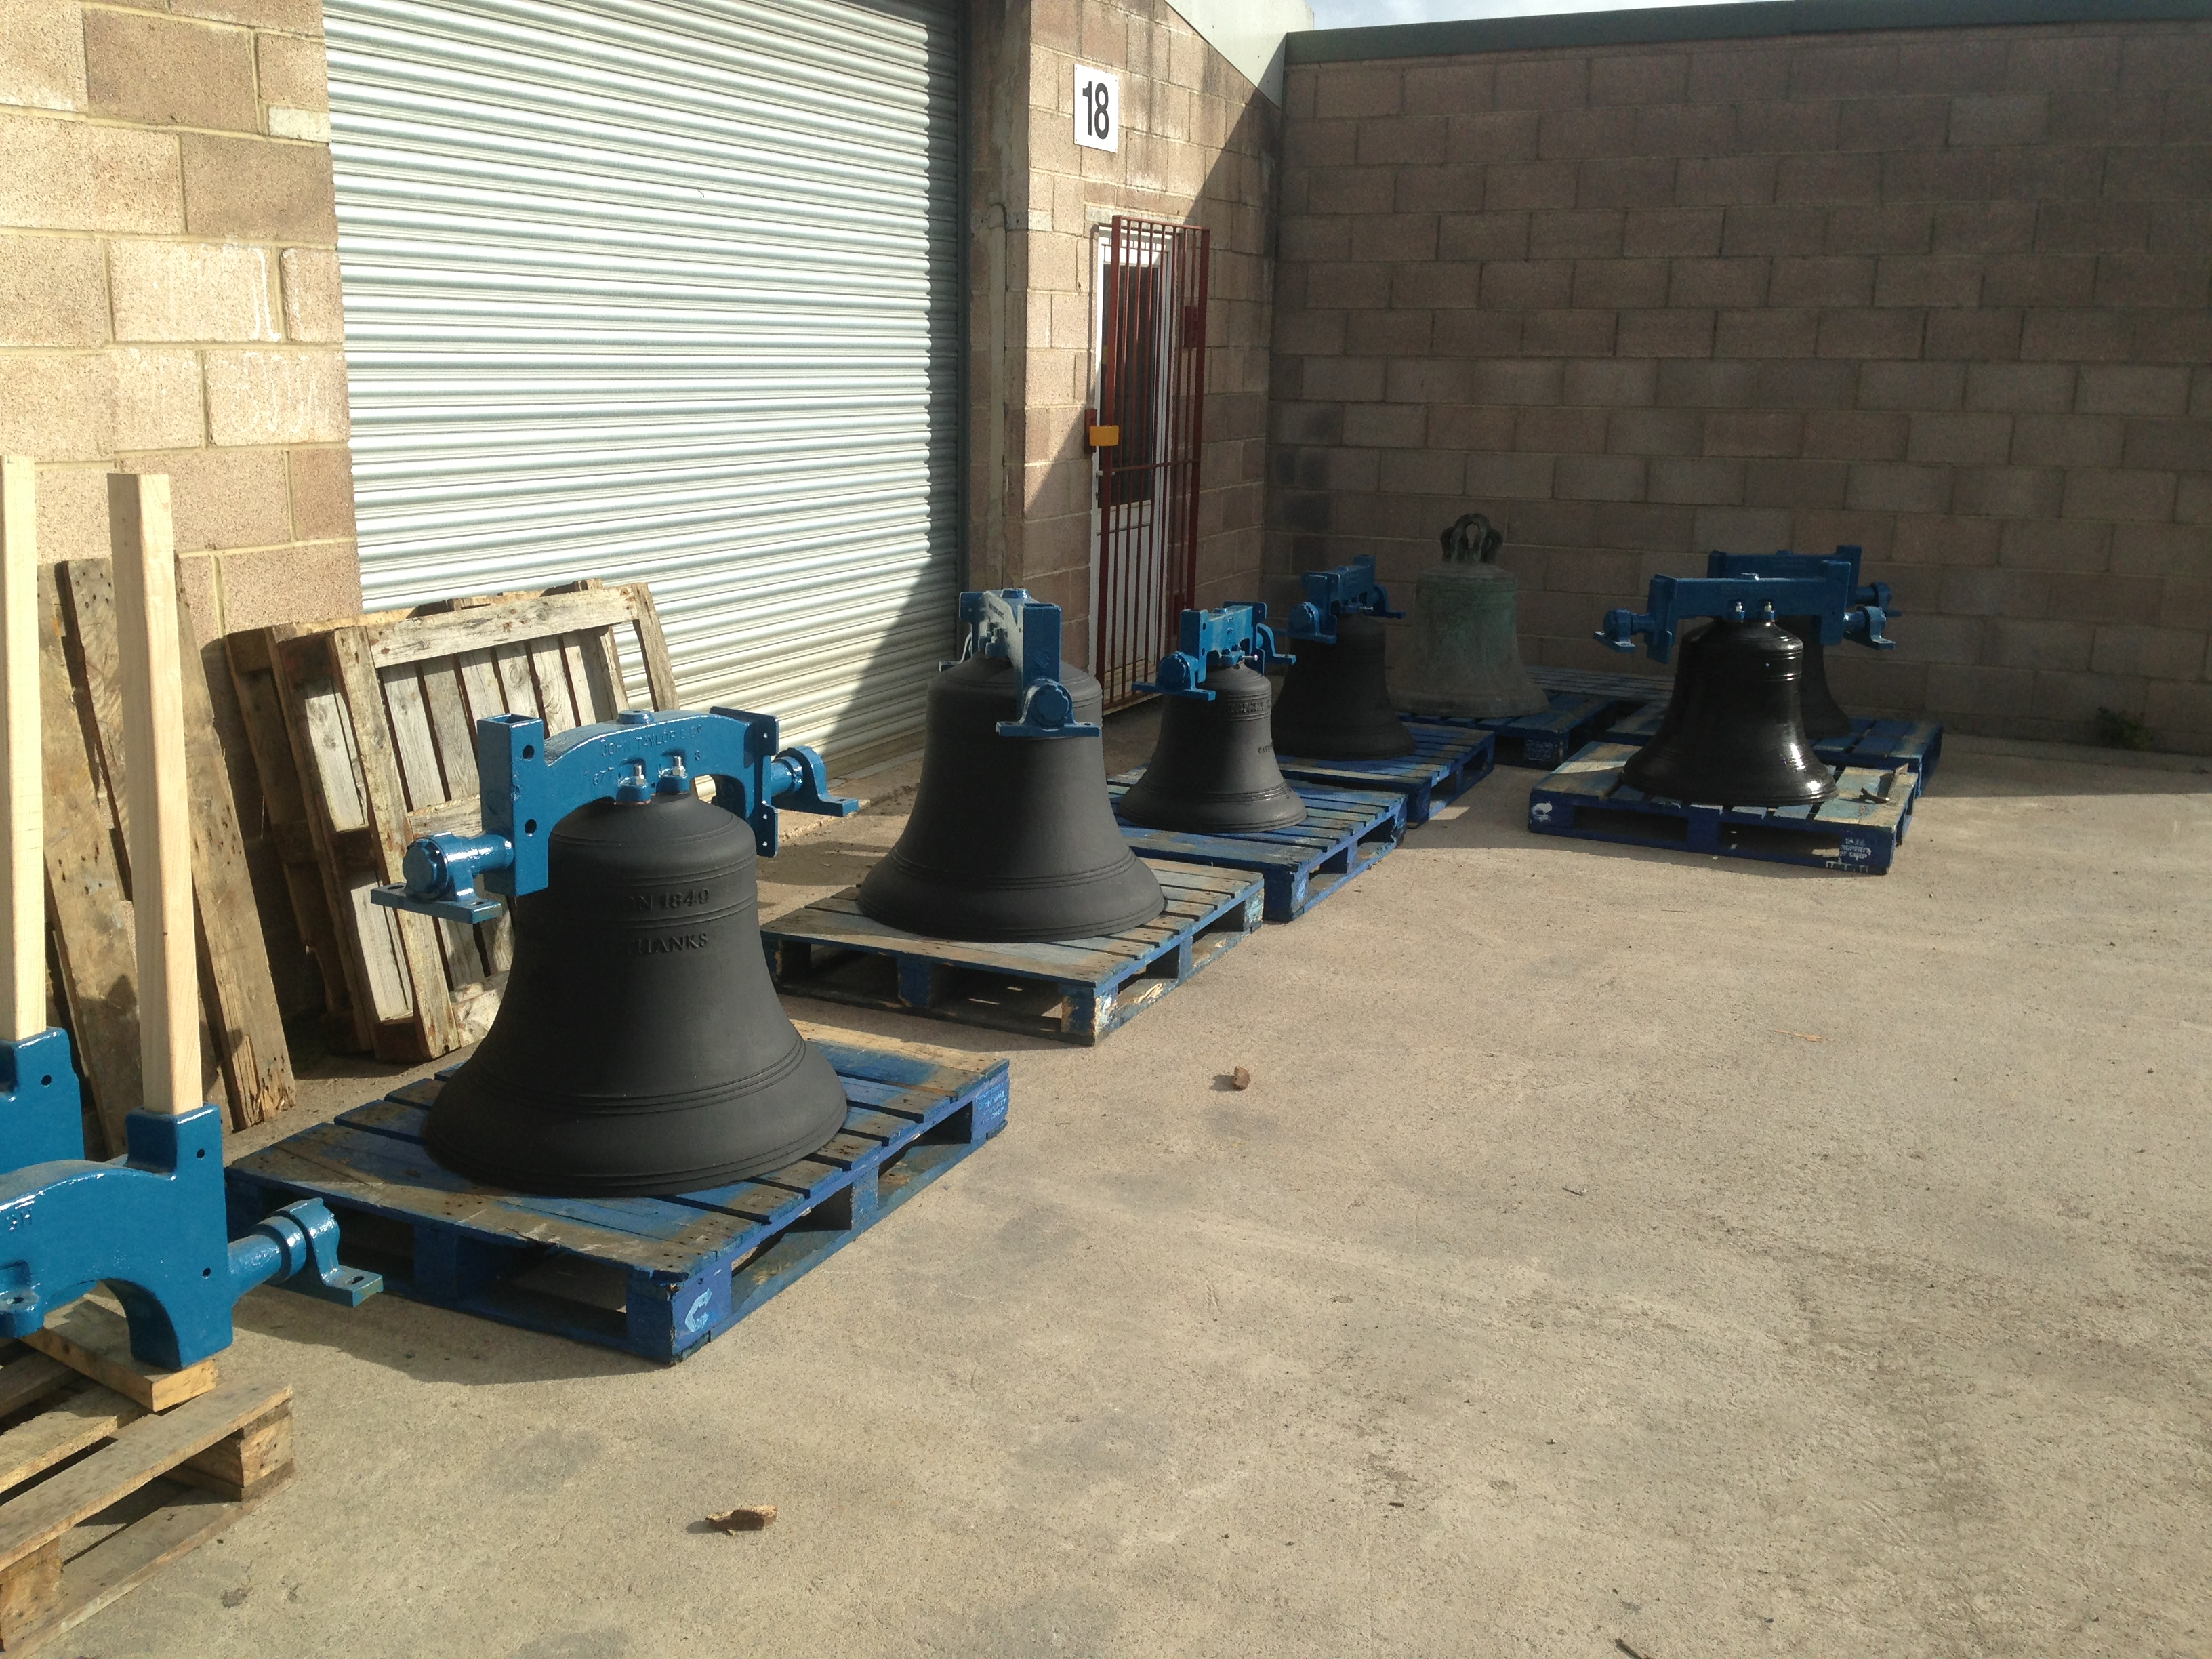 Some of the new bells waiting to be returned to Alderney